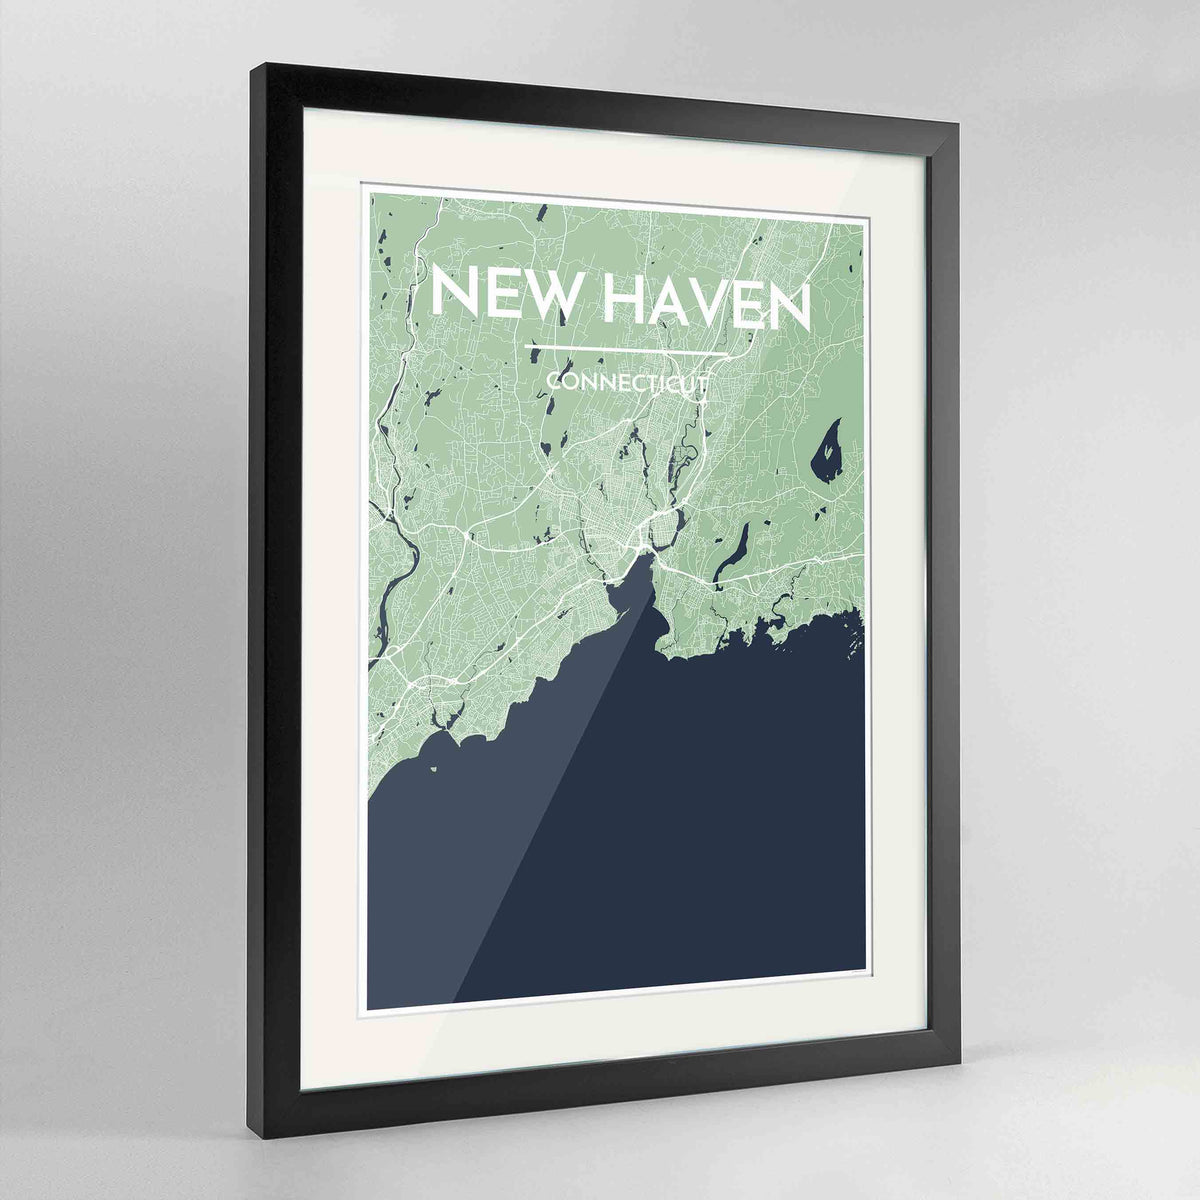 "Framed New Haven Map Art Print 24x36"" Contemporary Black frame Point Two Design Group"